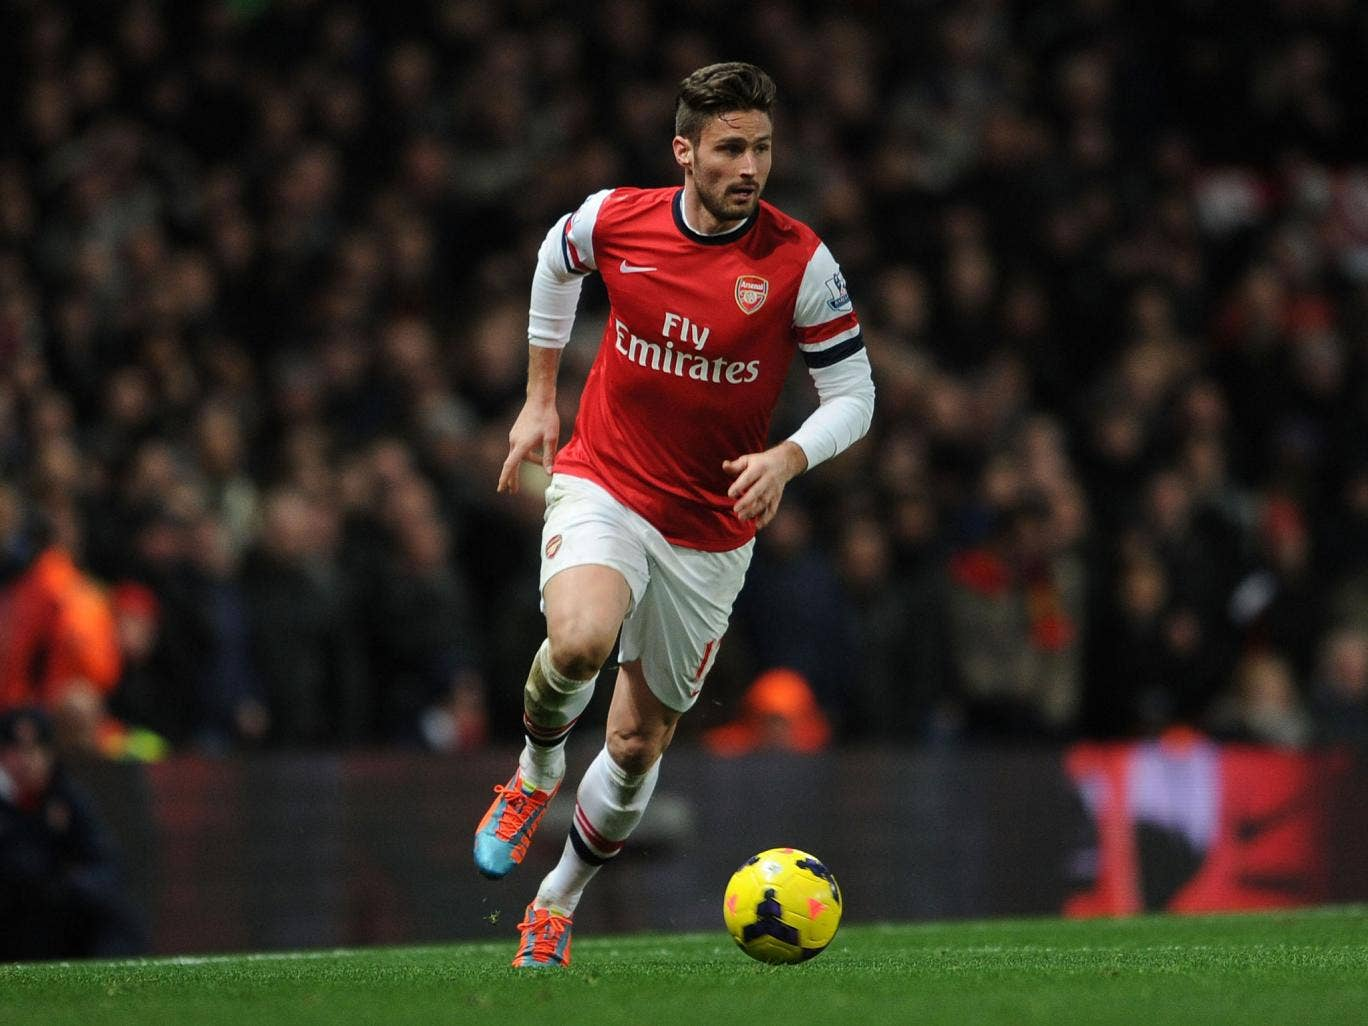 Arsenal striker Olivier Giroud has apologised to his wife, club and team-mates after he was seen taking a model back to the team hotel earlier this month